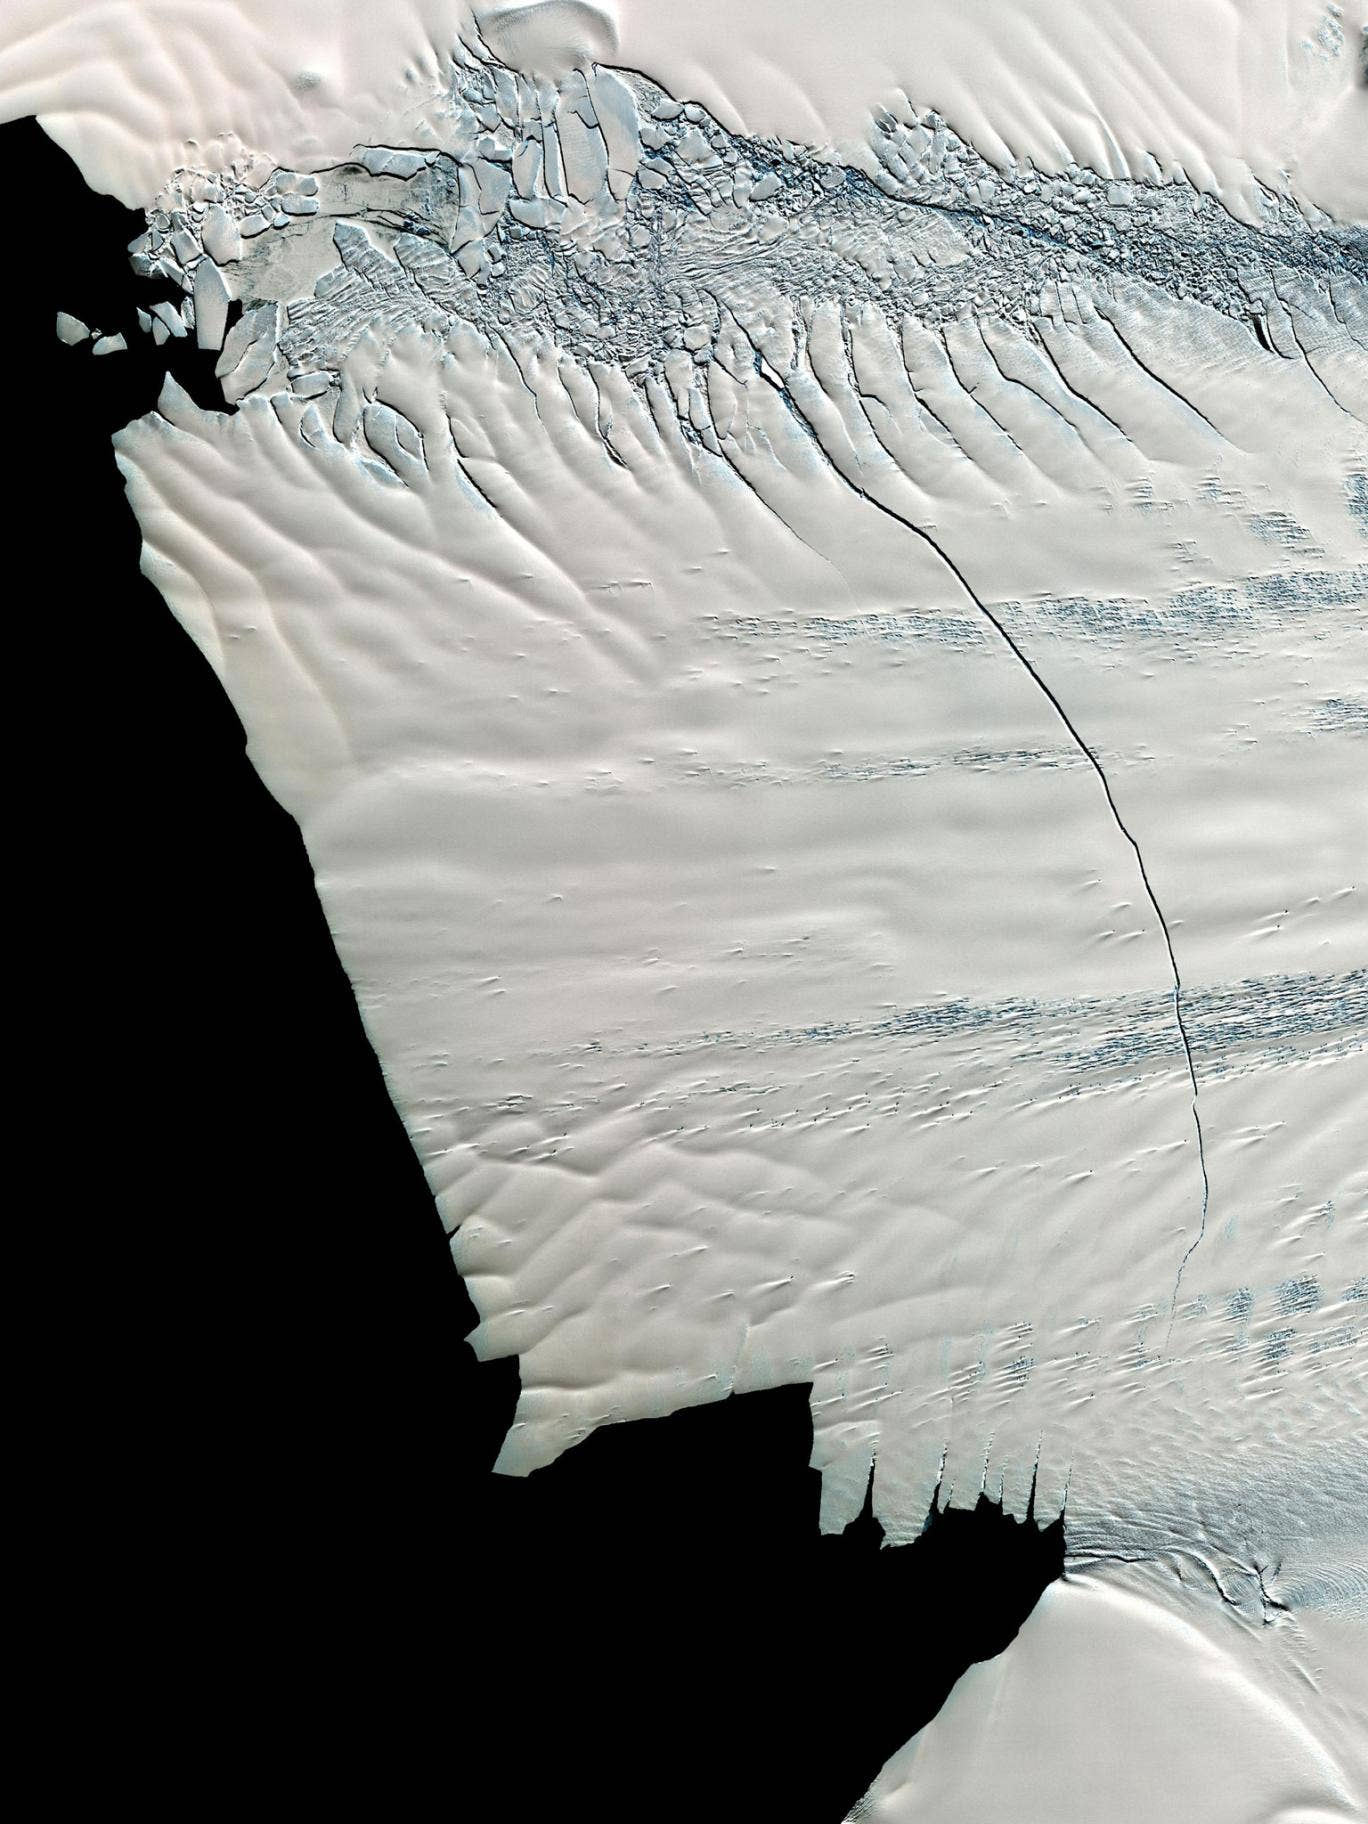 An image captured in November 2011 by NASA's Terra spacecraft, showing the crack developing on the Pine Island Glacier. The iceberg has separated from the sheet in the past few days